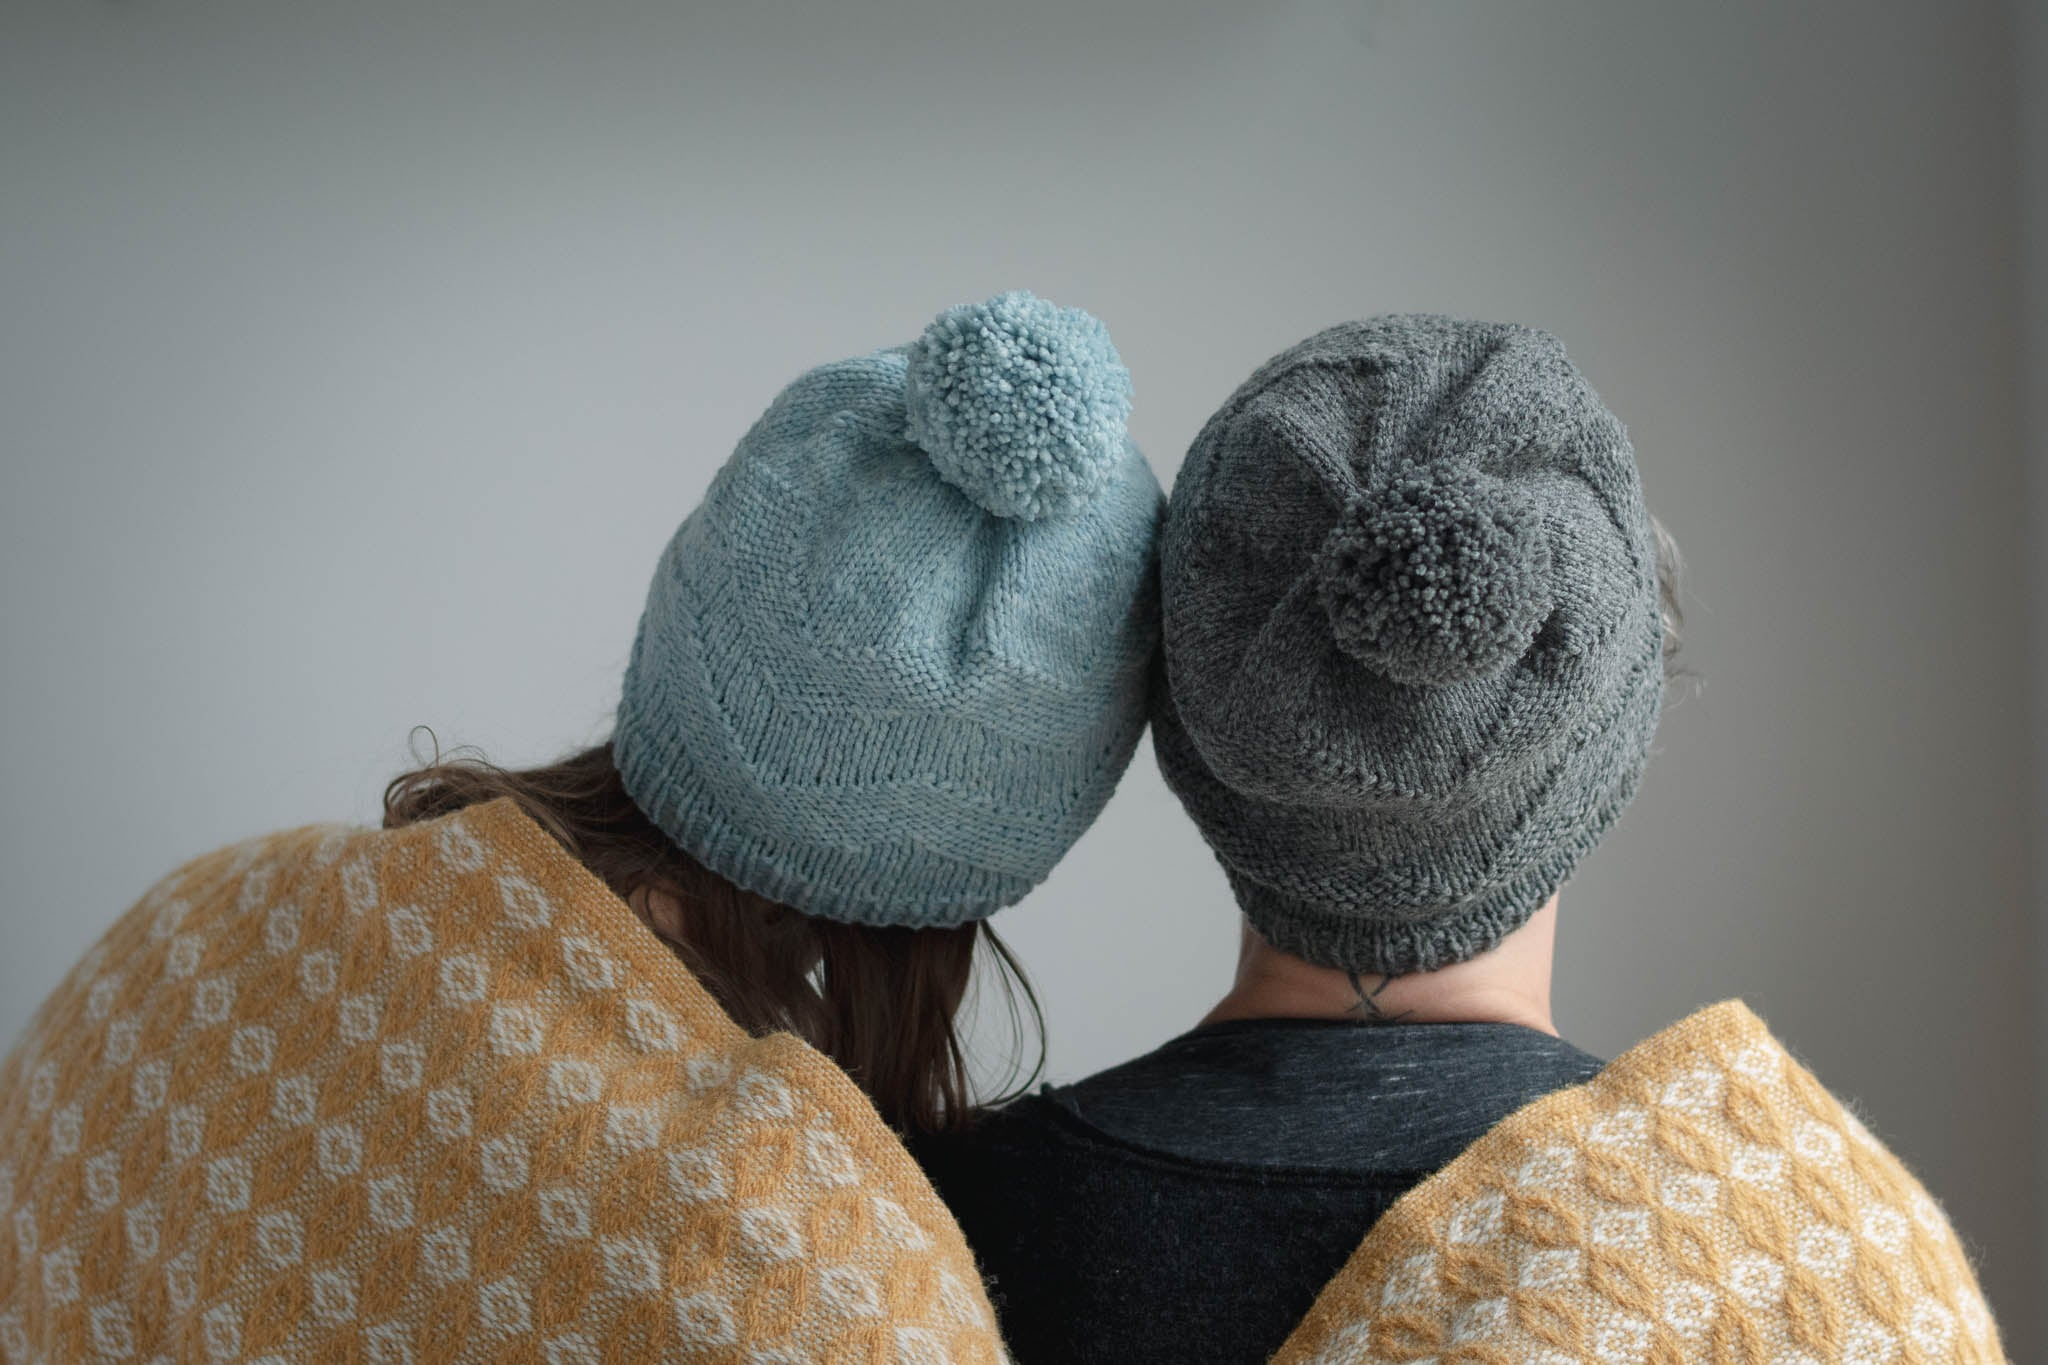 Two models face away from the camera, each wearing the same slouchy beanie hat with pom pom. They are snuggled together and wrapped in a shared yellow blanket.